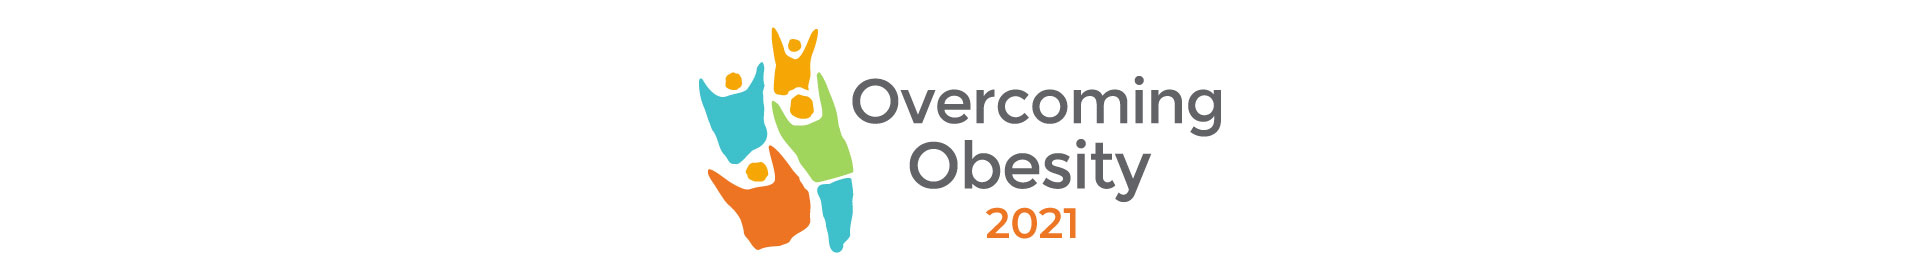 Overcoming Obesity 2021 Event Banner